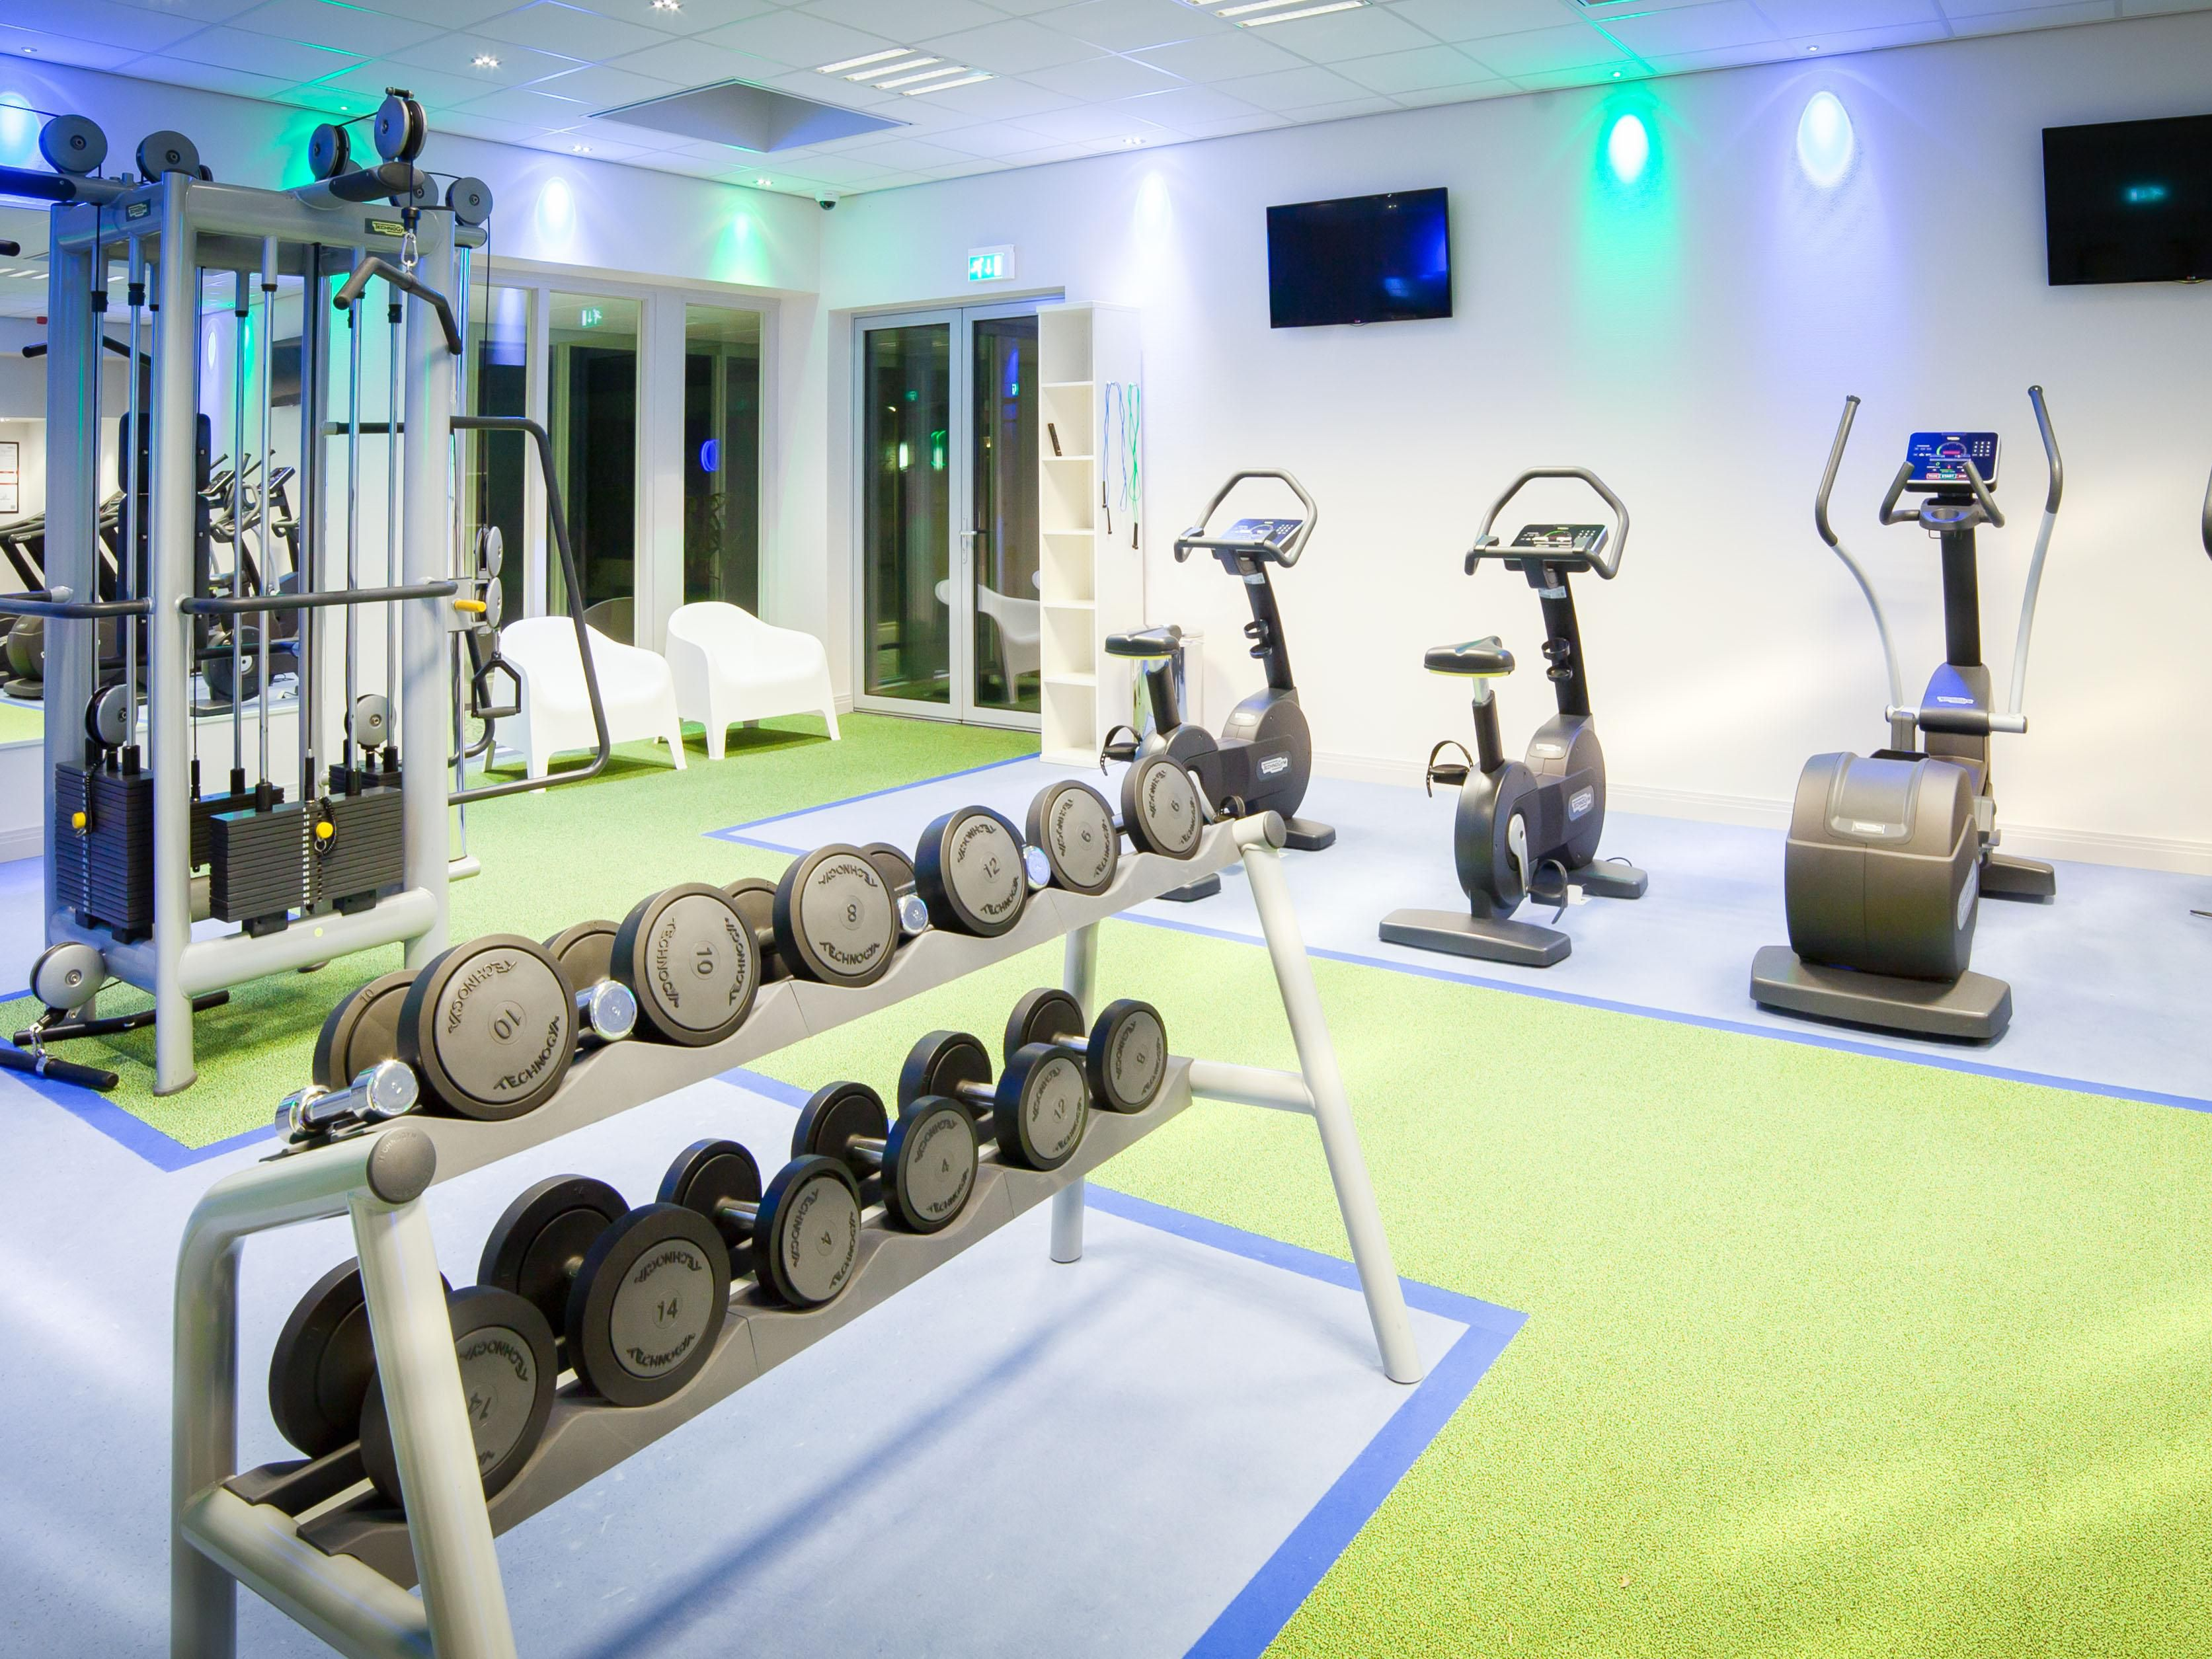 Time to work out? Welcome to our Fitness center!